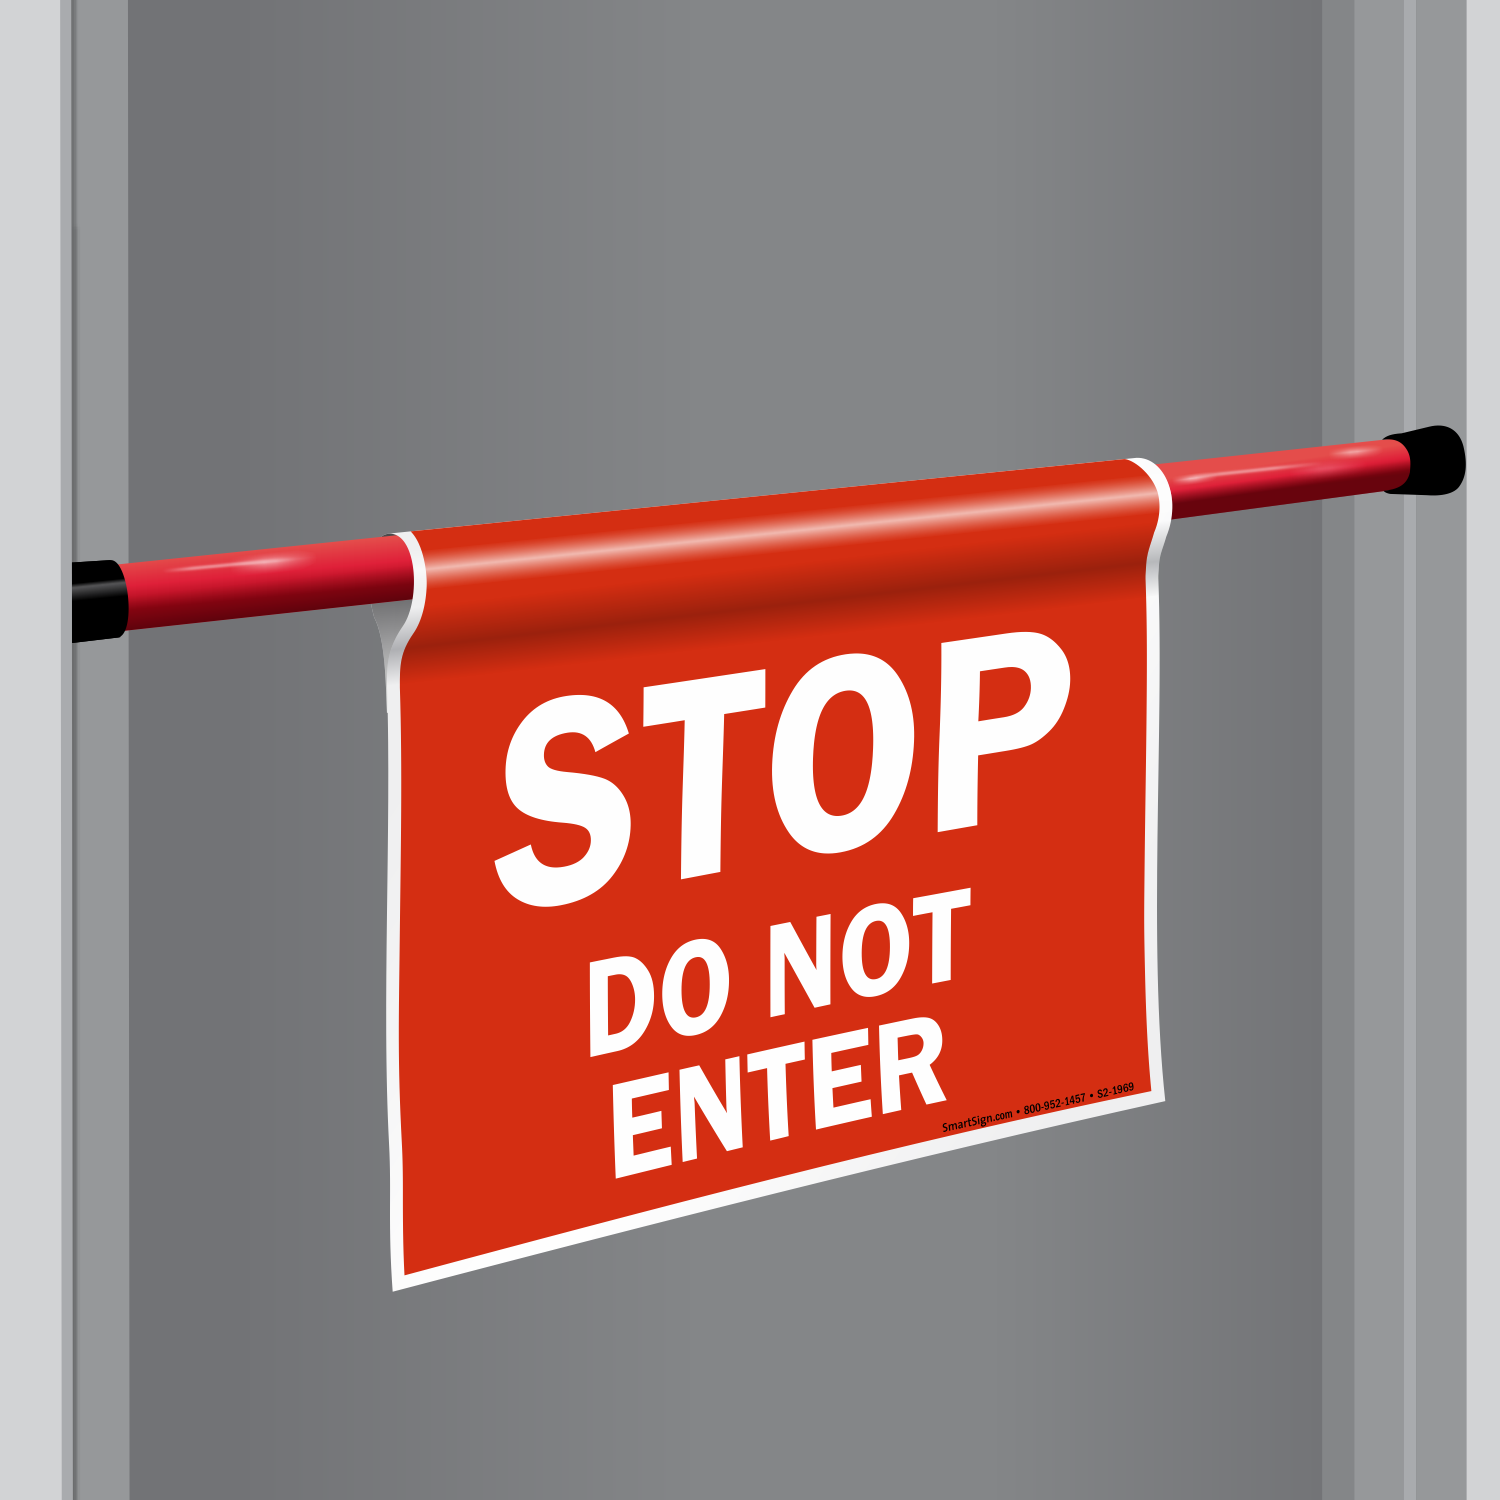 DoorBoss Signs: Portable, Lightweight Safety Barriers